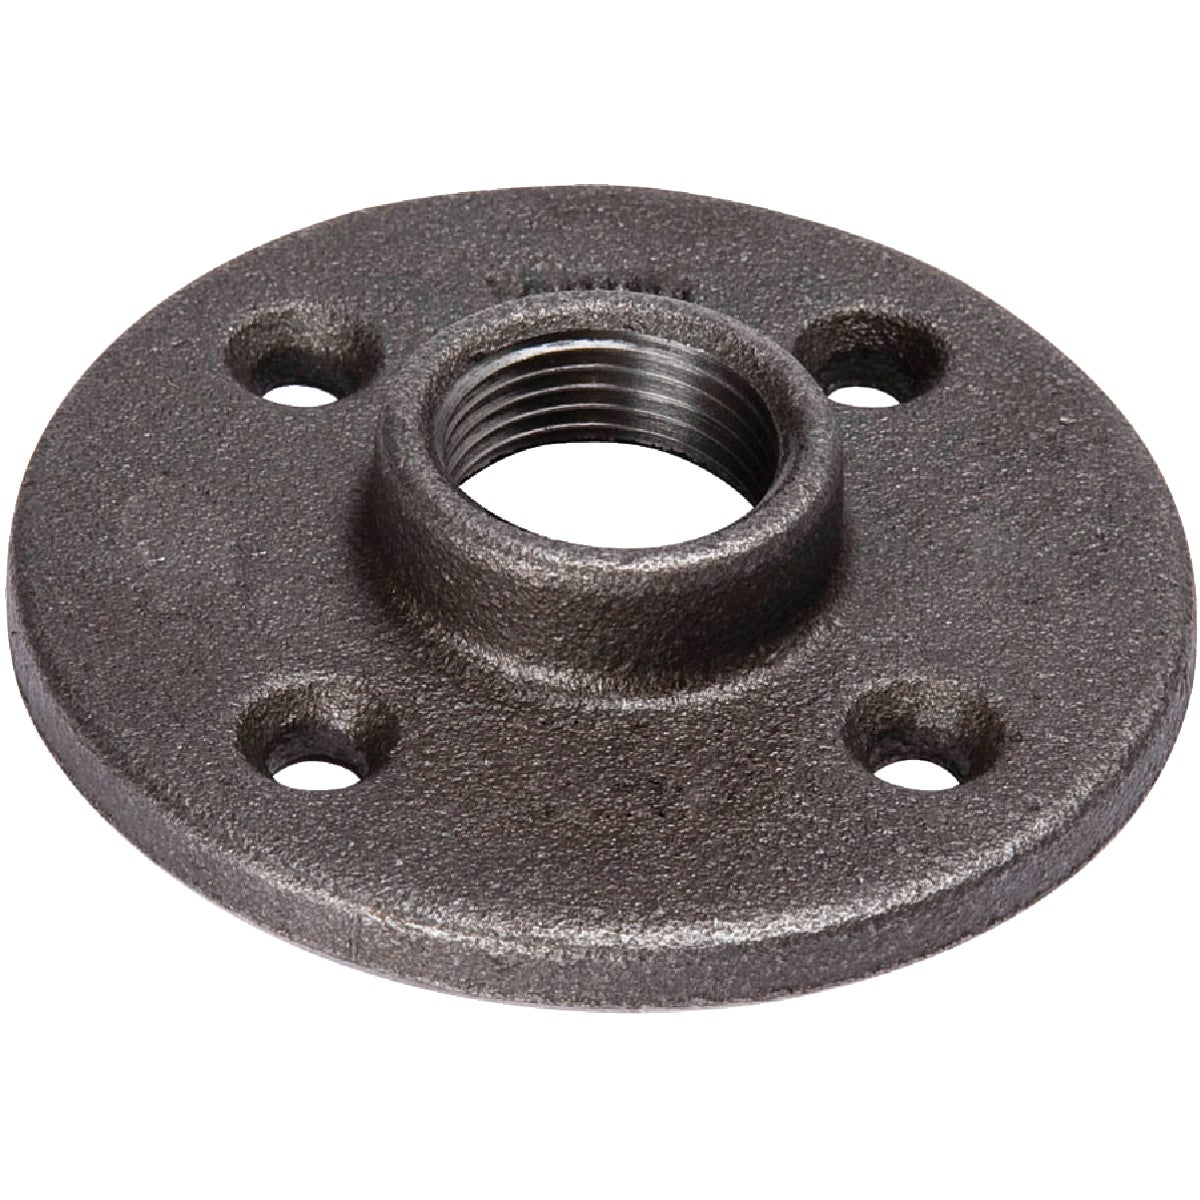 "2"" BLACK FLANGE - 521-608BG by Mueller B K"